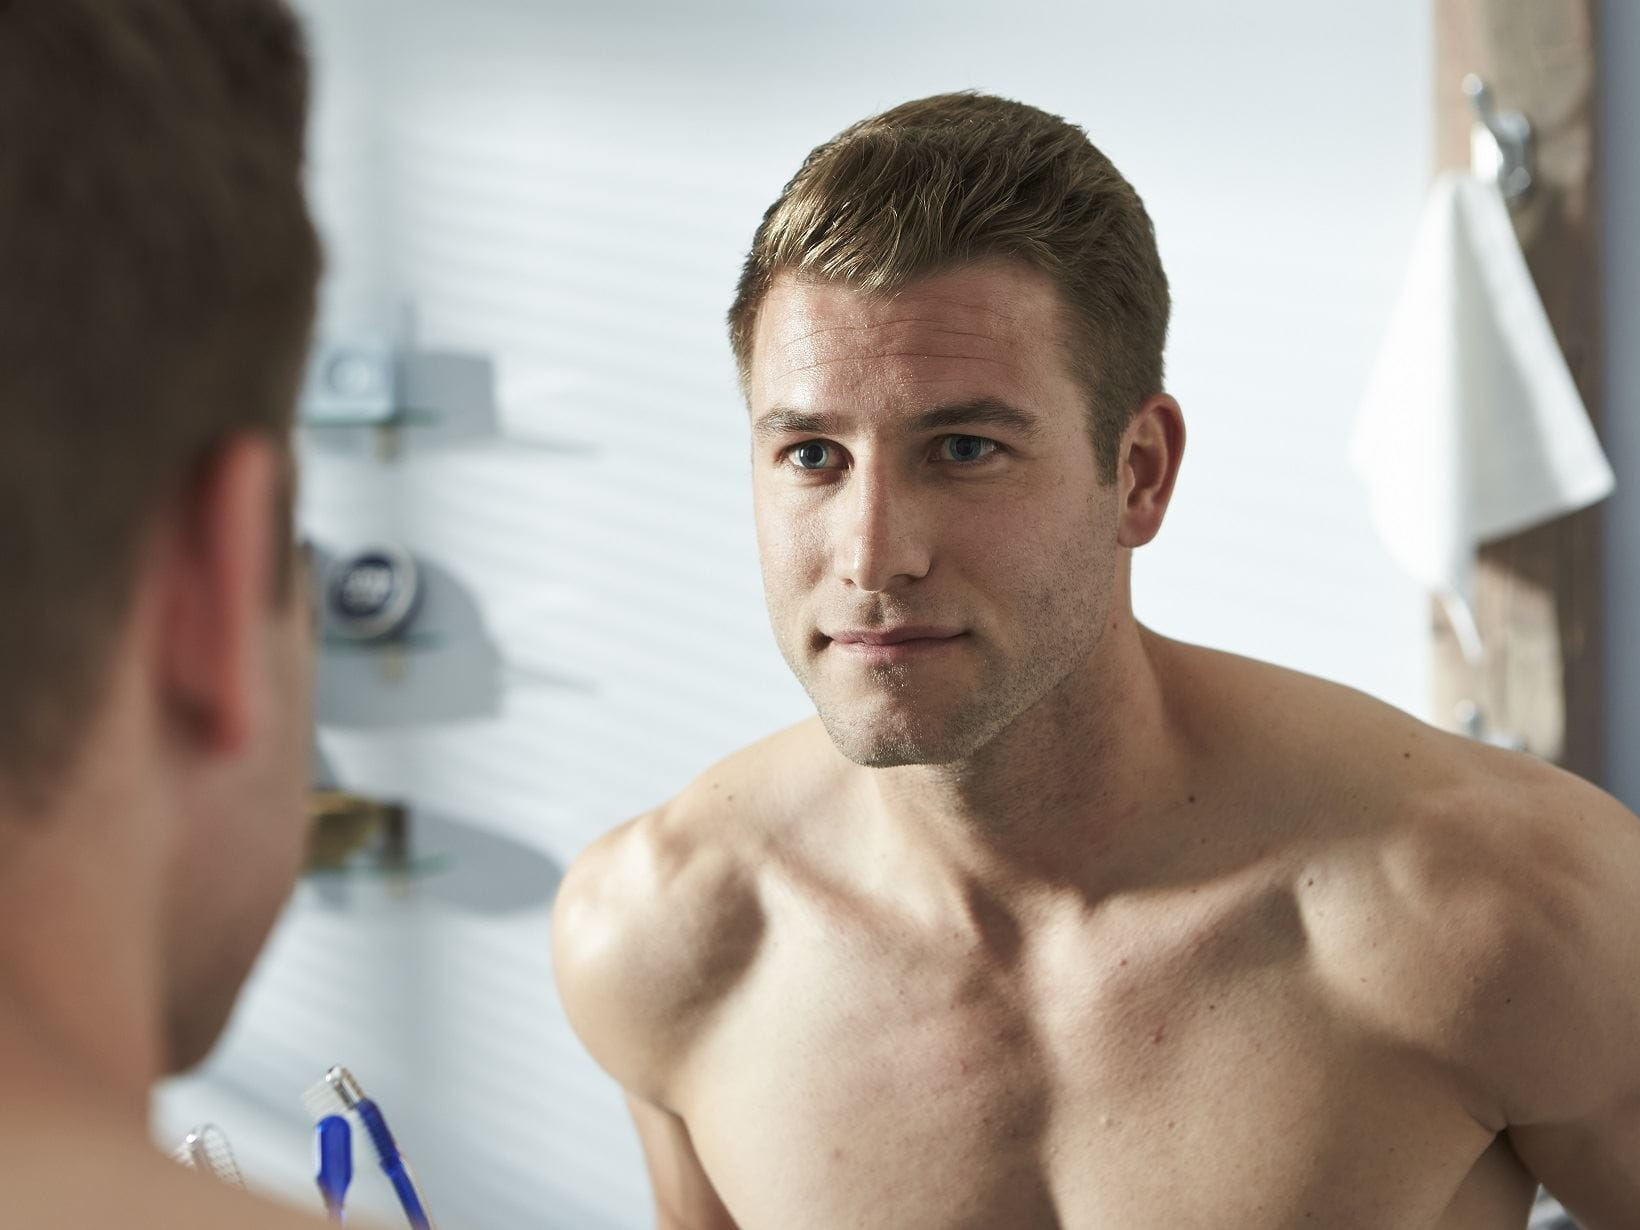 man with blonde hair looking at his reflection in the mirror